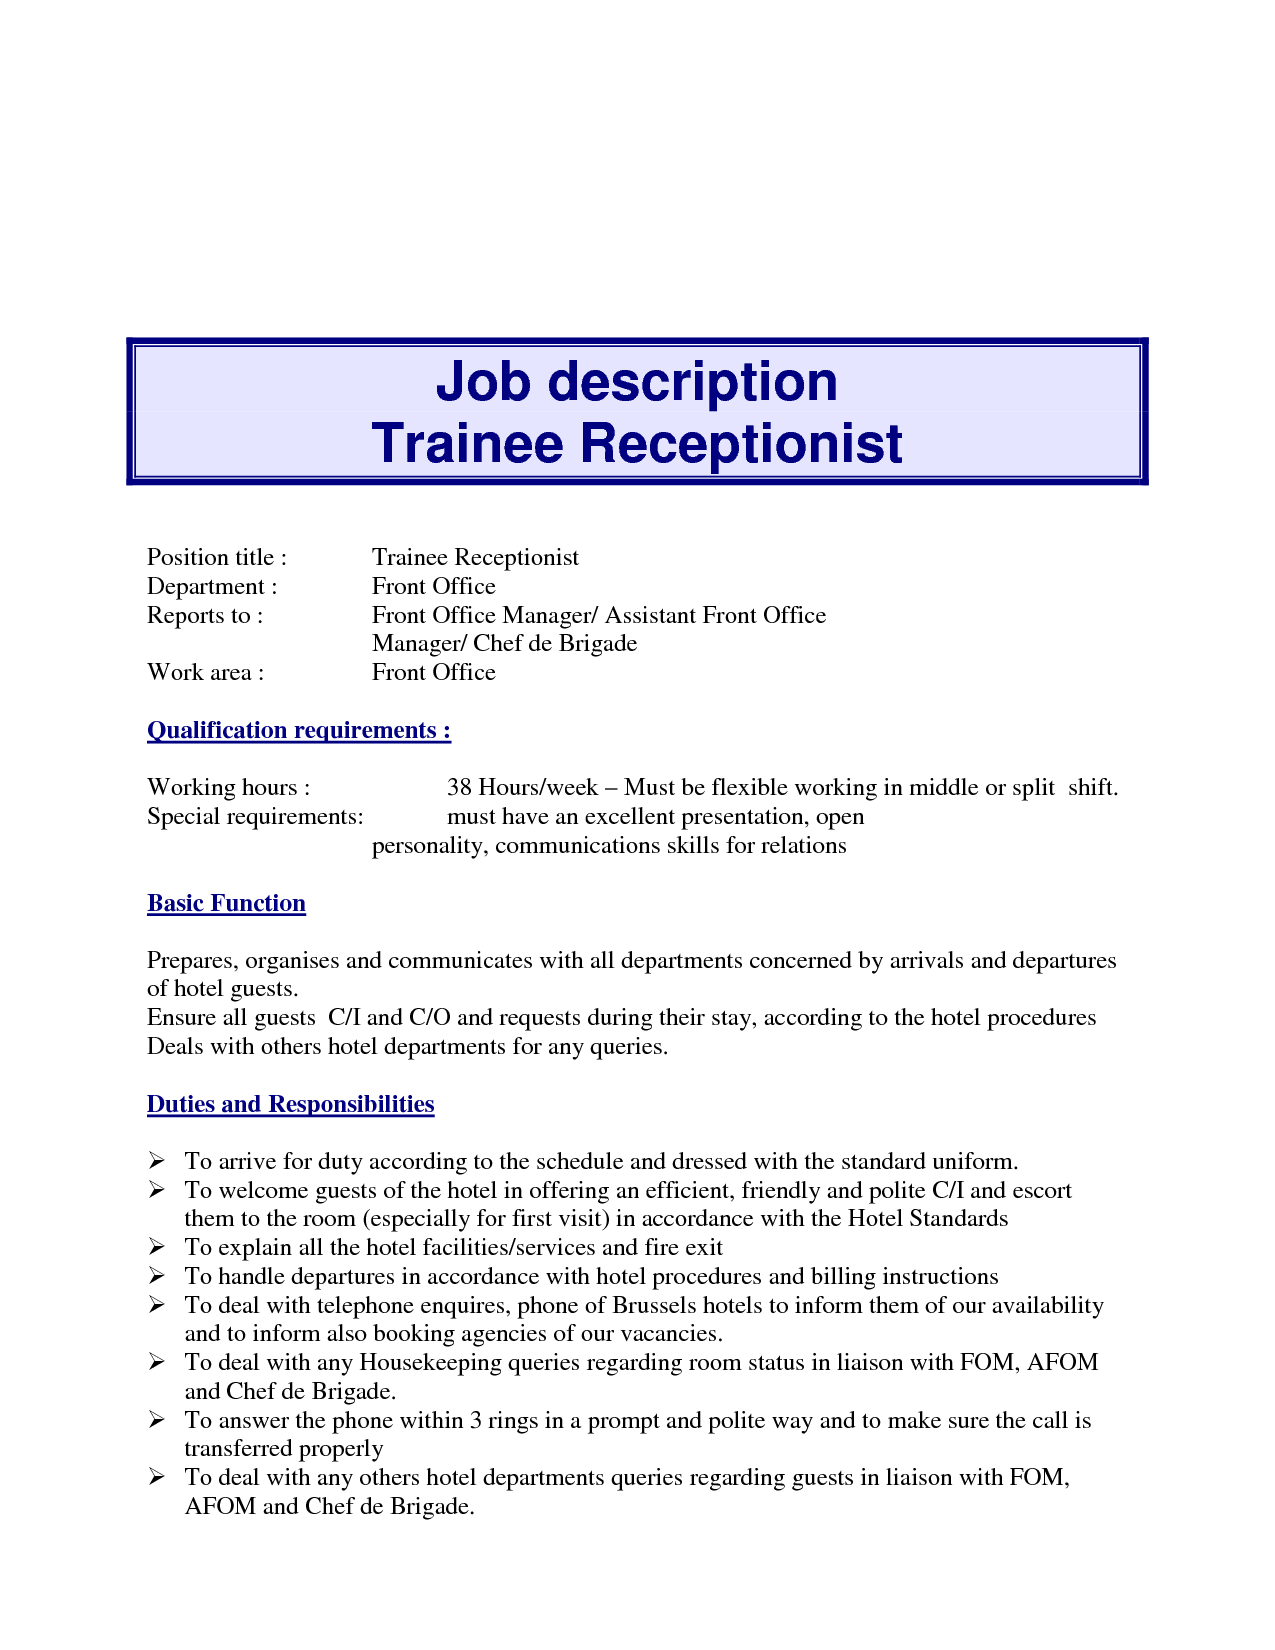 physician assistant job description template - 10 example resume receptionist job description